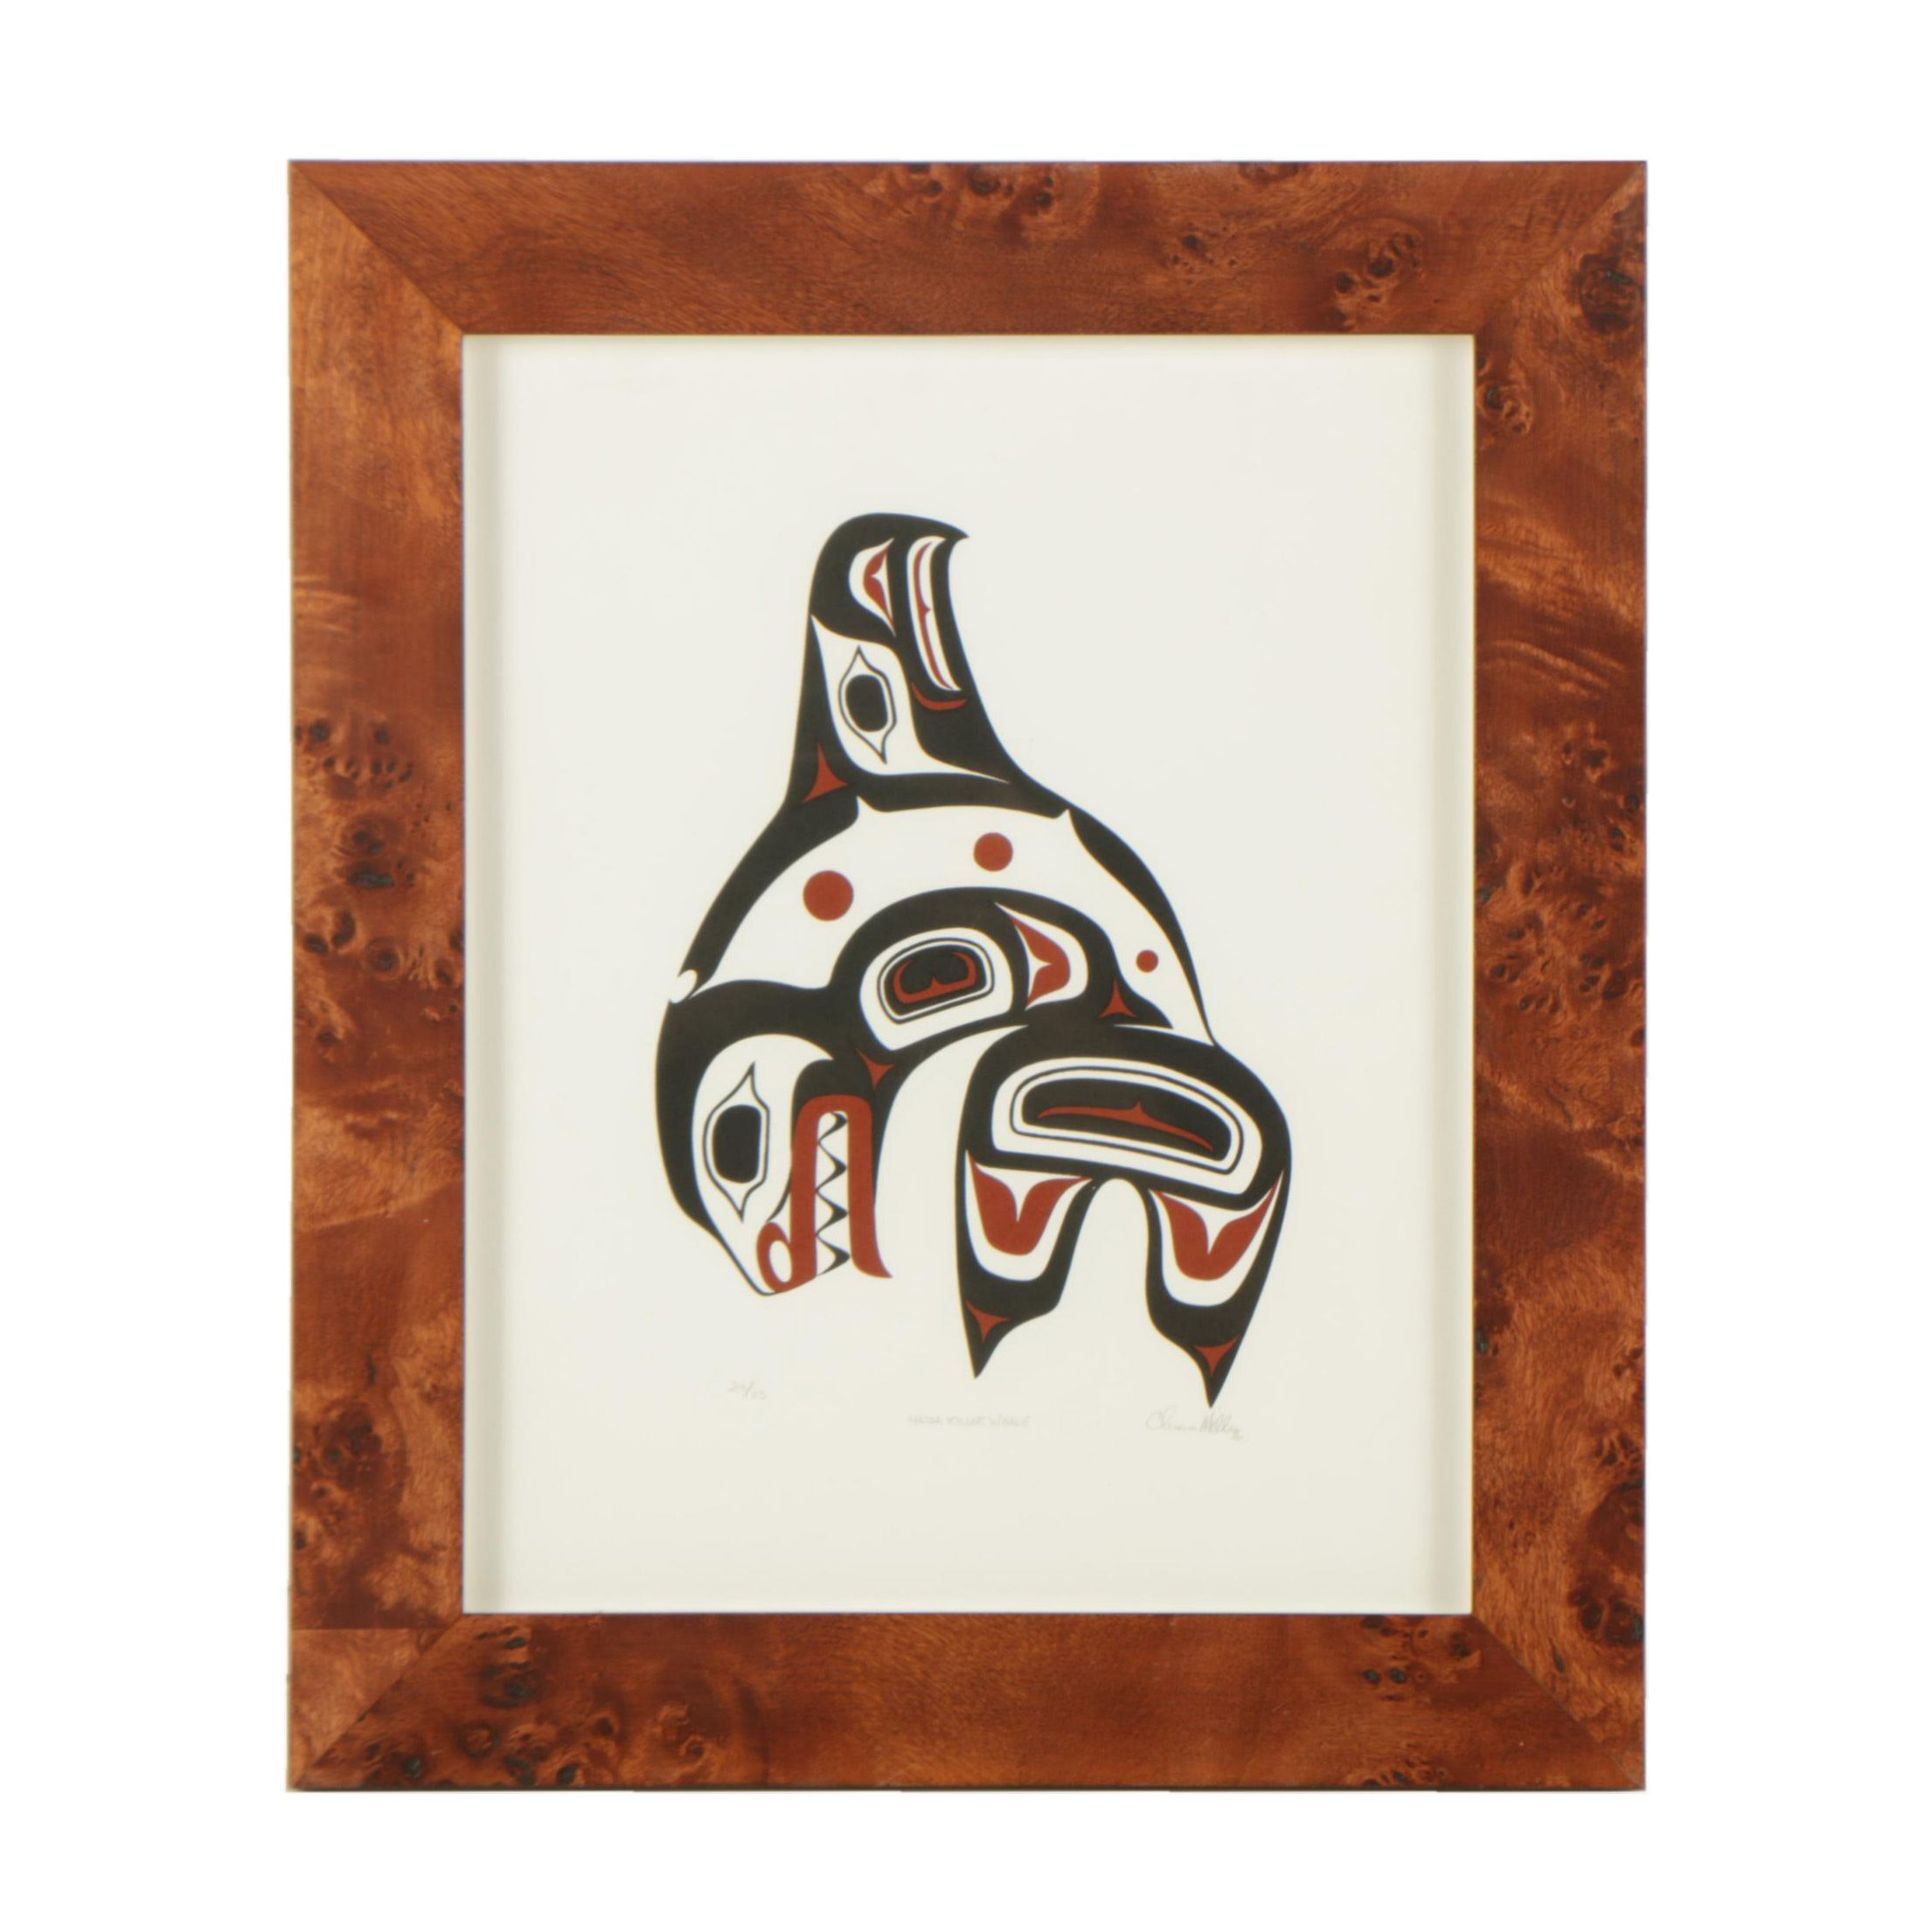 "Clarence Mills 1996 Serigraph of Haida Imagery ""Haida Killer Whale"""